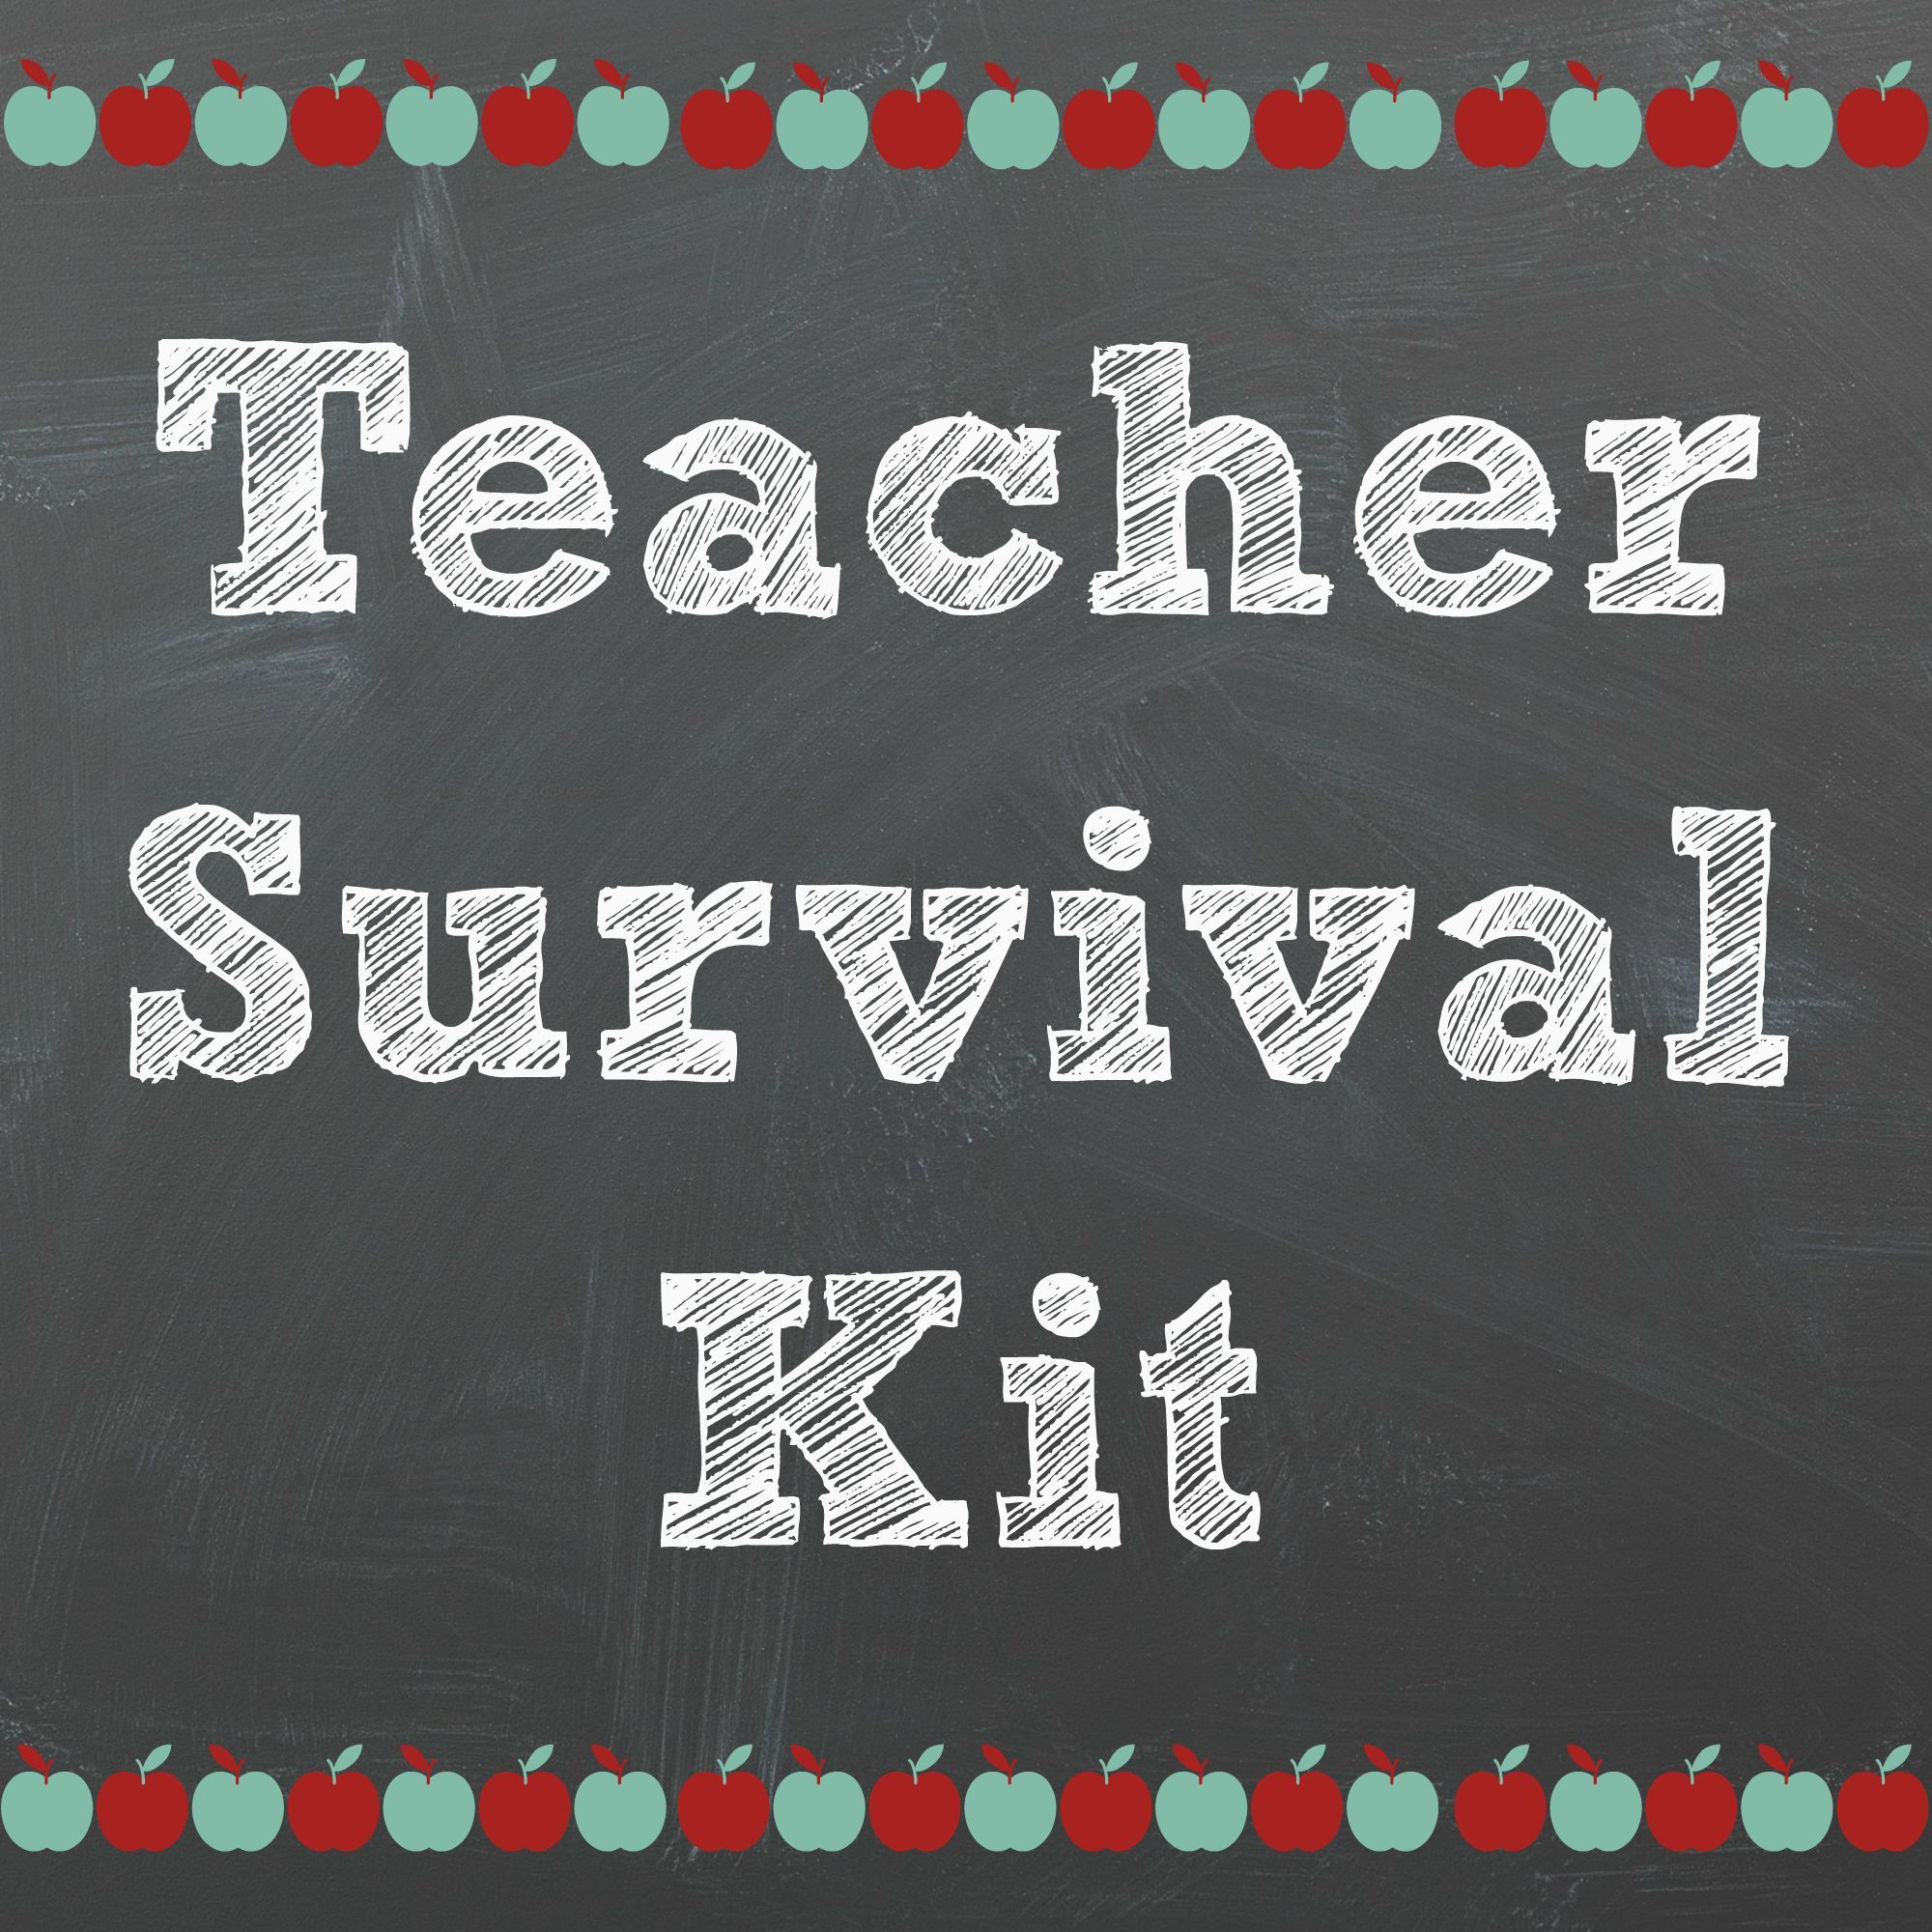 graphic about Teacher Survival Kit Printable named Back again in the direction of Higher education Trainer Offer Package Do-it-yourself Trainer survival